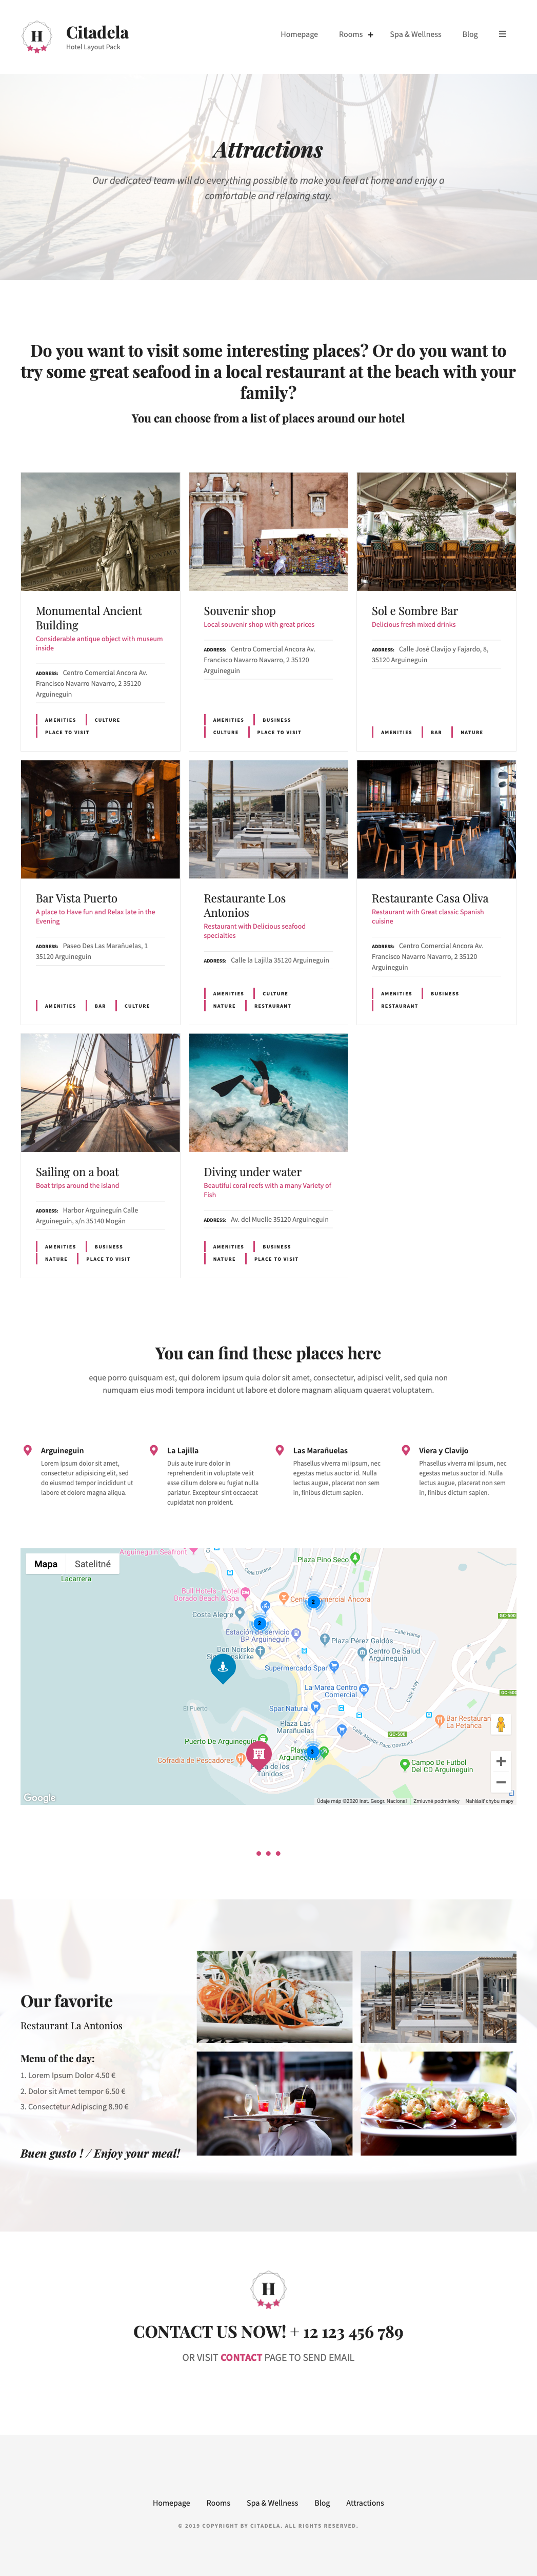 Attraction Map Hotel WordPress Theme